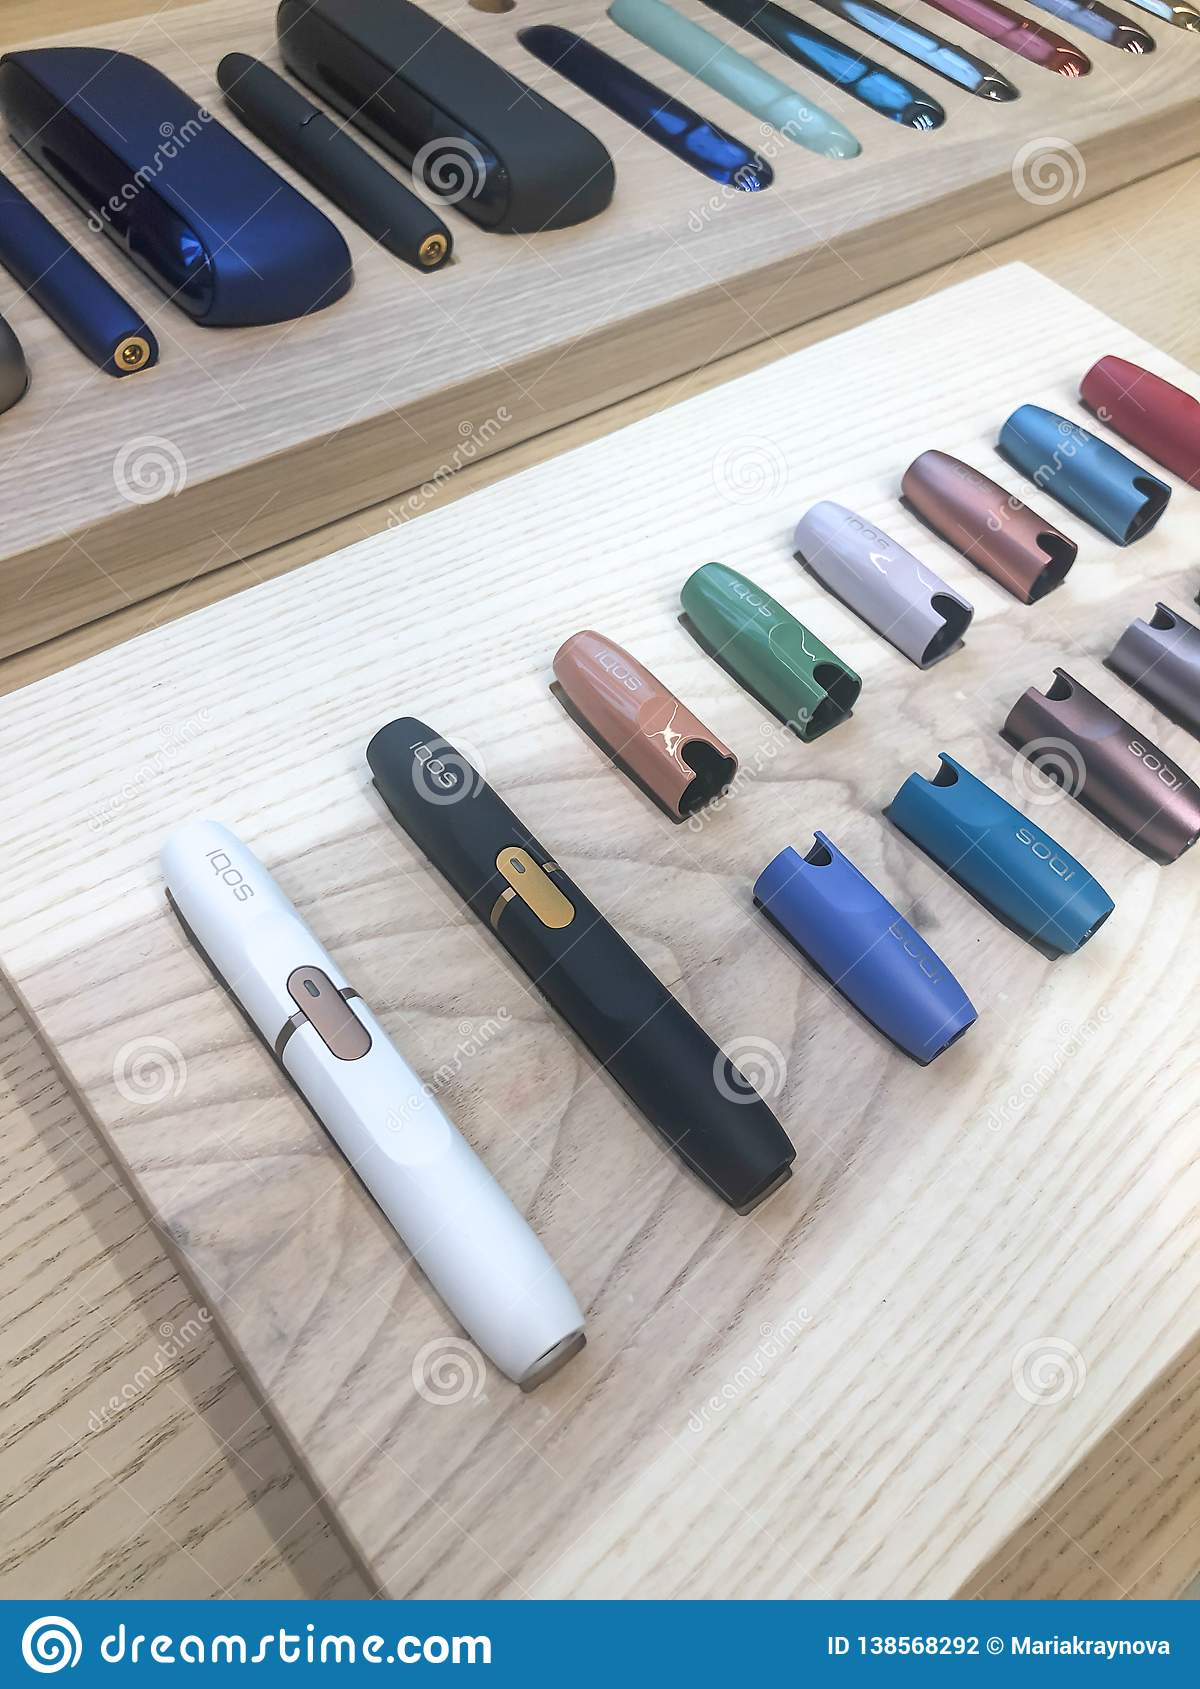 MOSCOW, RUSSIA - FEBRUARY 04, 2019: Iqos Electronic Cigarette Philip